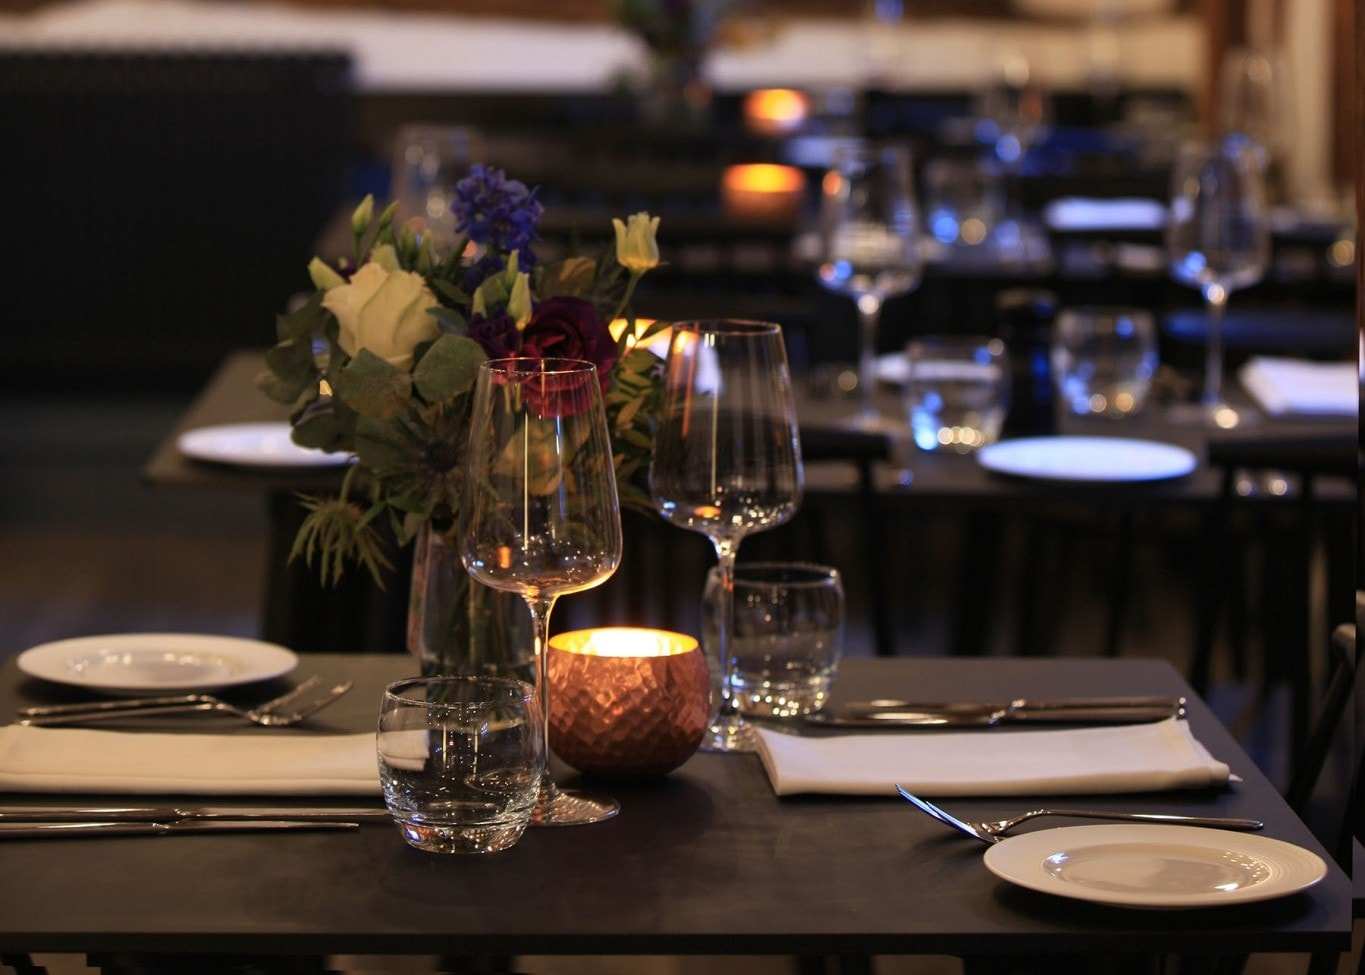 restaurant lighting design: Loft table set up